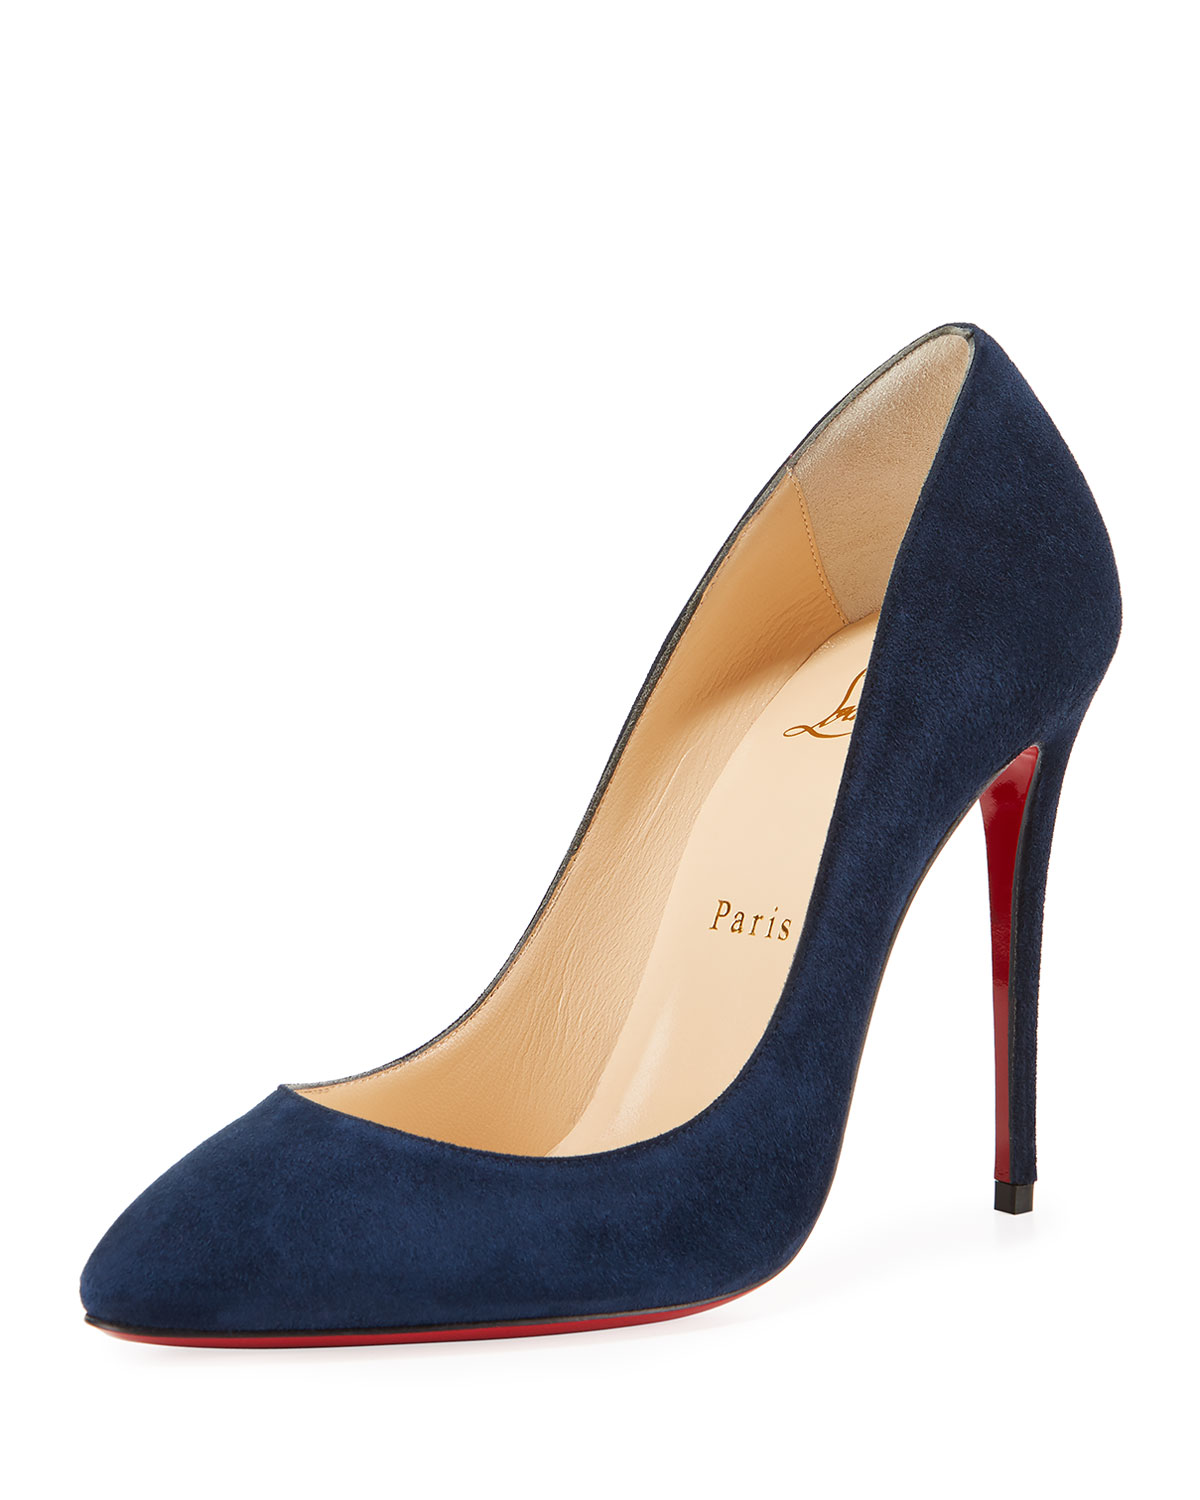 28f42595cf4 Eloise 100mm Suede Red Sole Pump